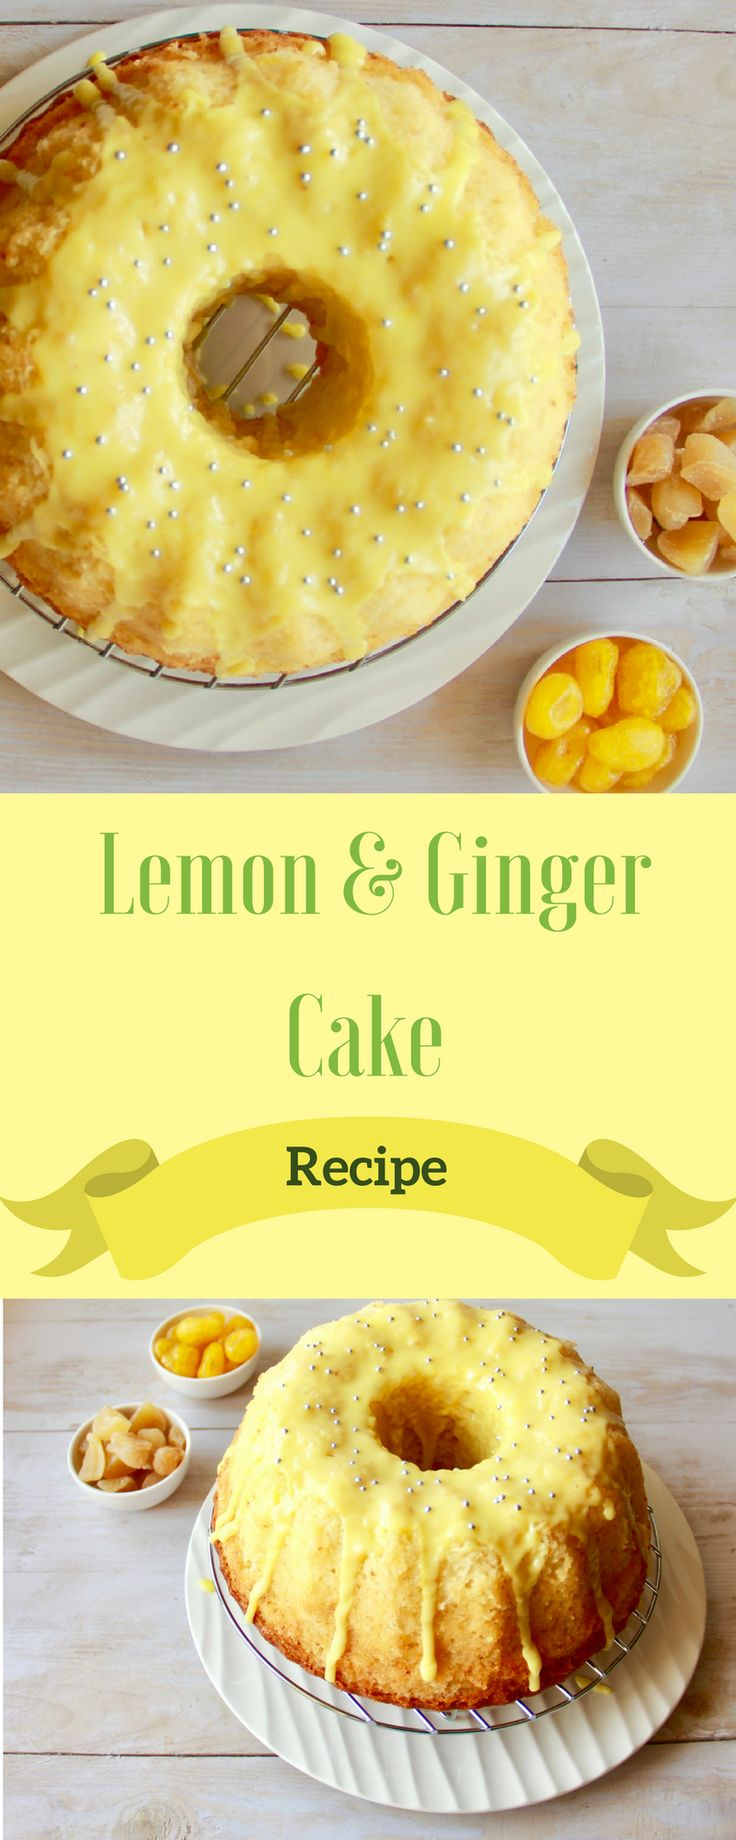 Recipe light and soft Lemon cake with a hint of ginger. A good option to serve with tea and coffee or as a dessert with some whipped cream